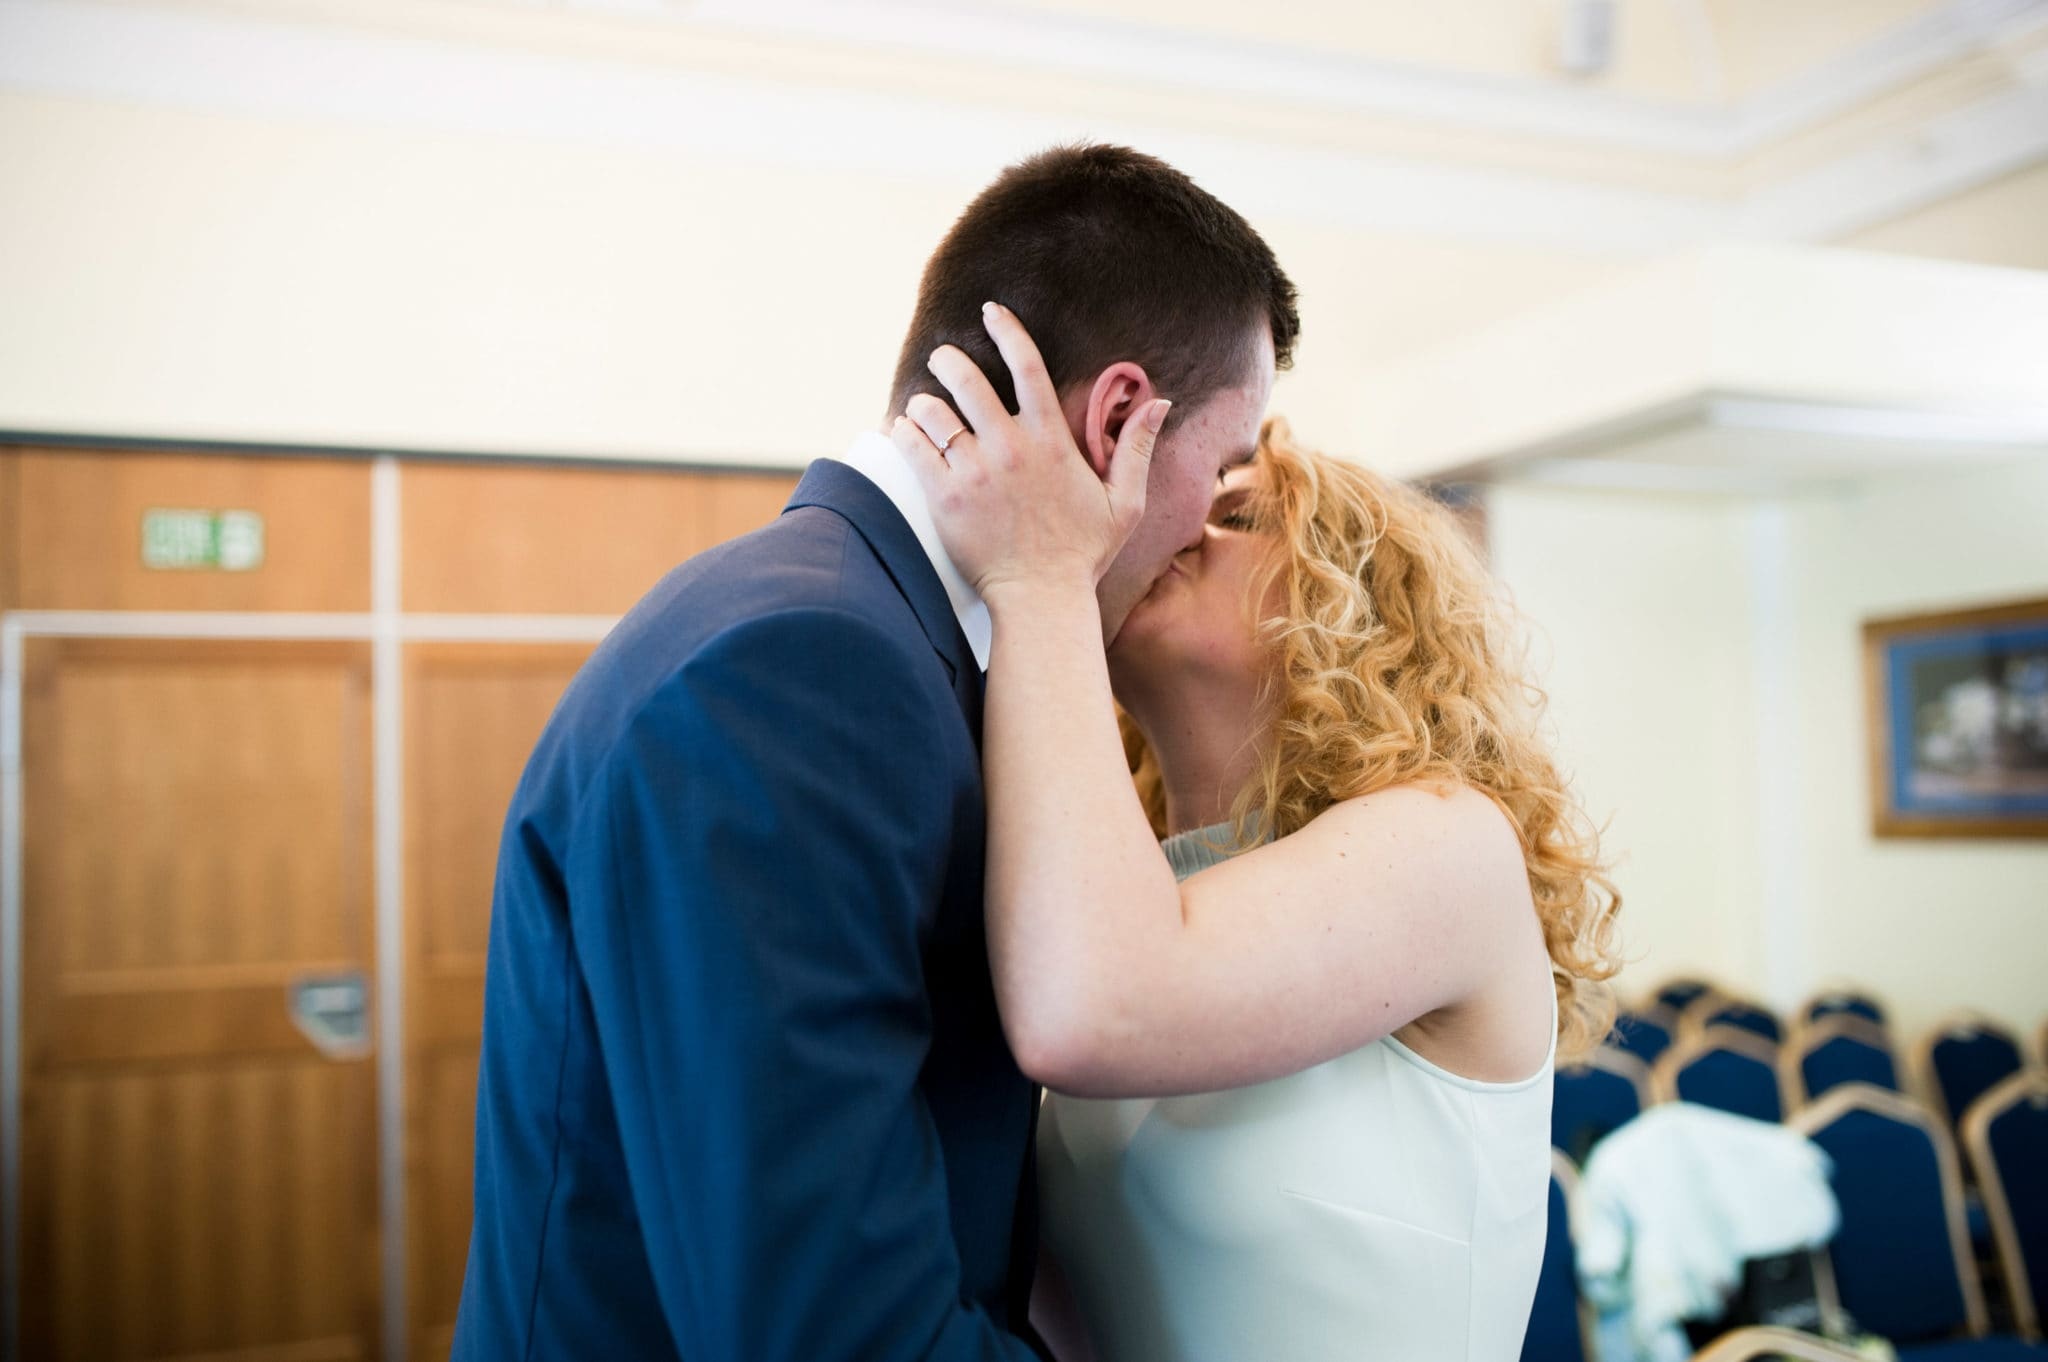 bride and groom Bromley on Bow Registry office, London UK Wedding photography ceremony room with the guest, first kiss